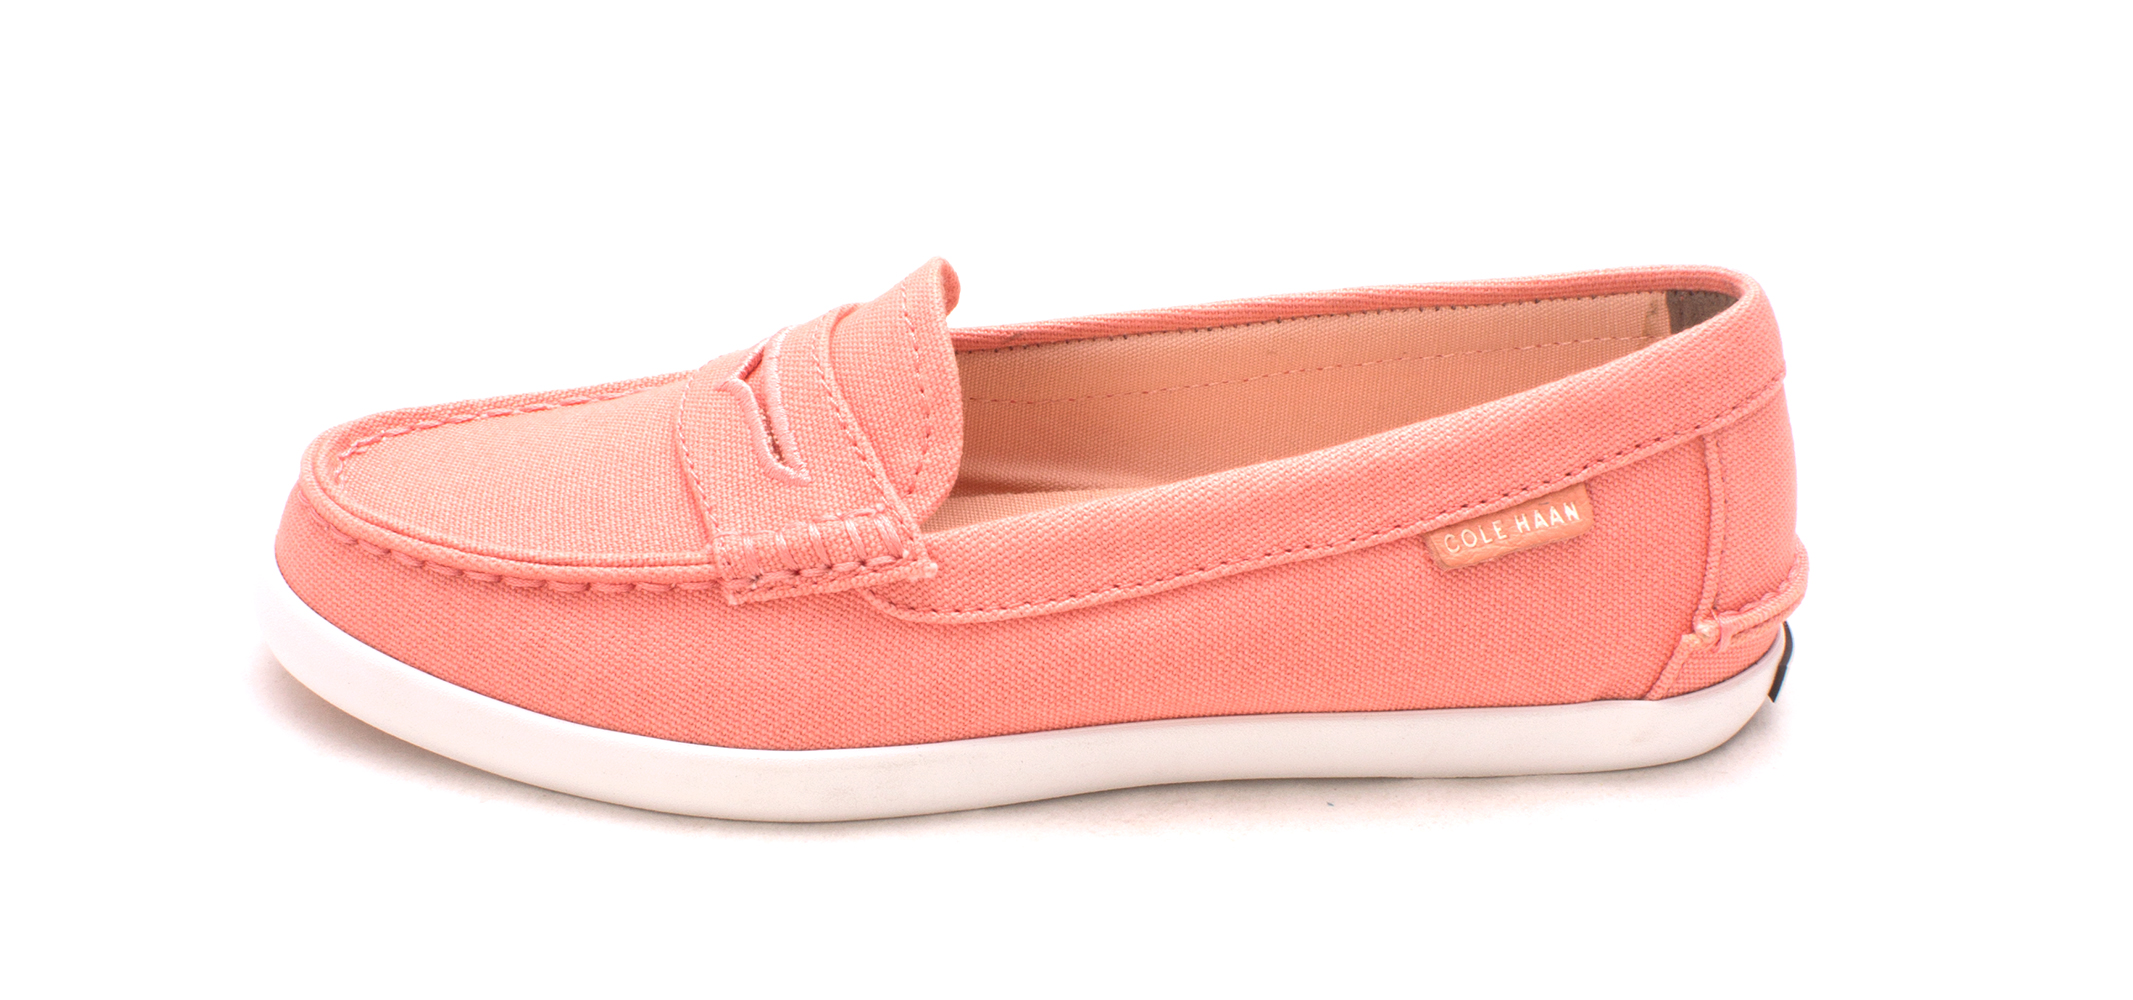 Cole Haan Damenschuhe W02180 Canvas Closed Toe Toe Toe Loafers  Coral Haze  Größe 6.0 89c271